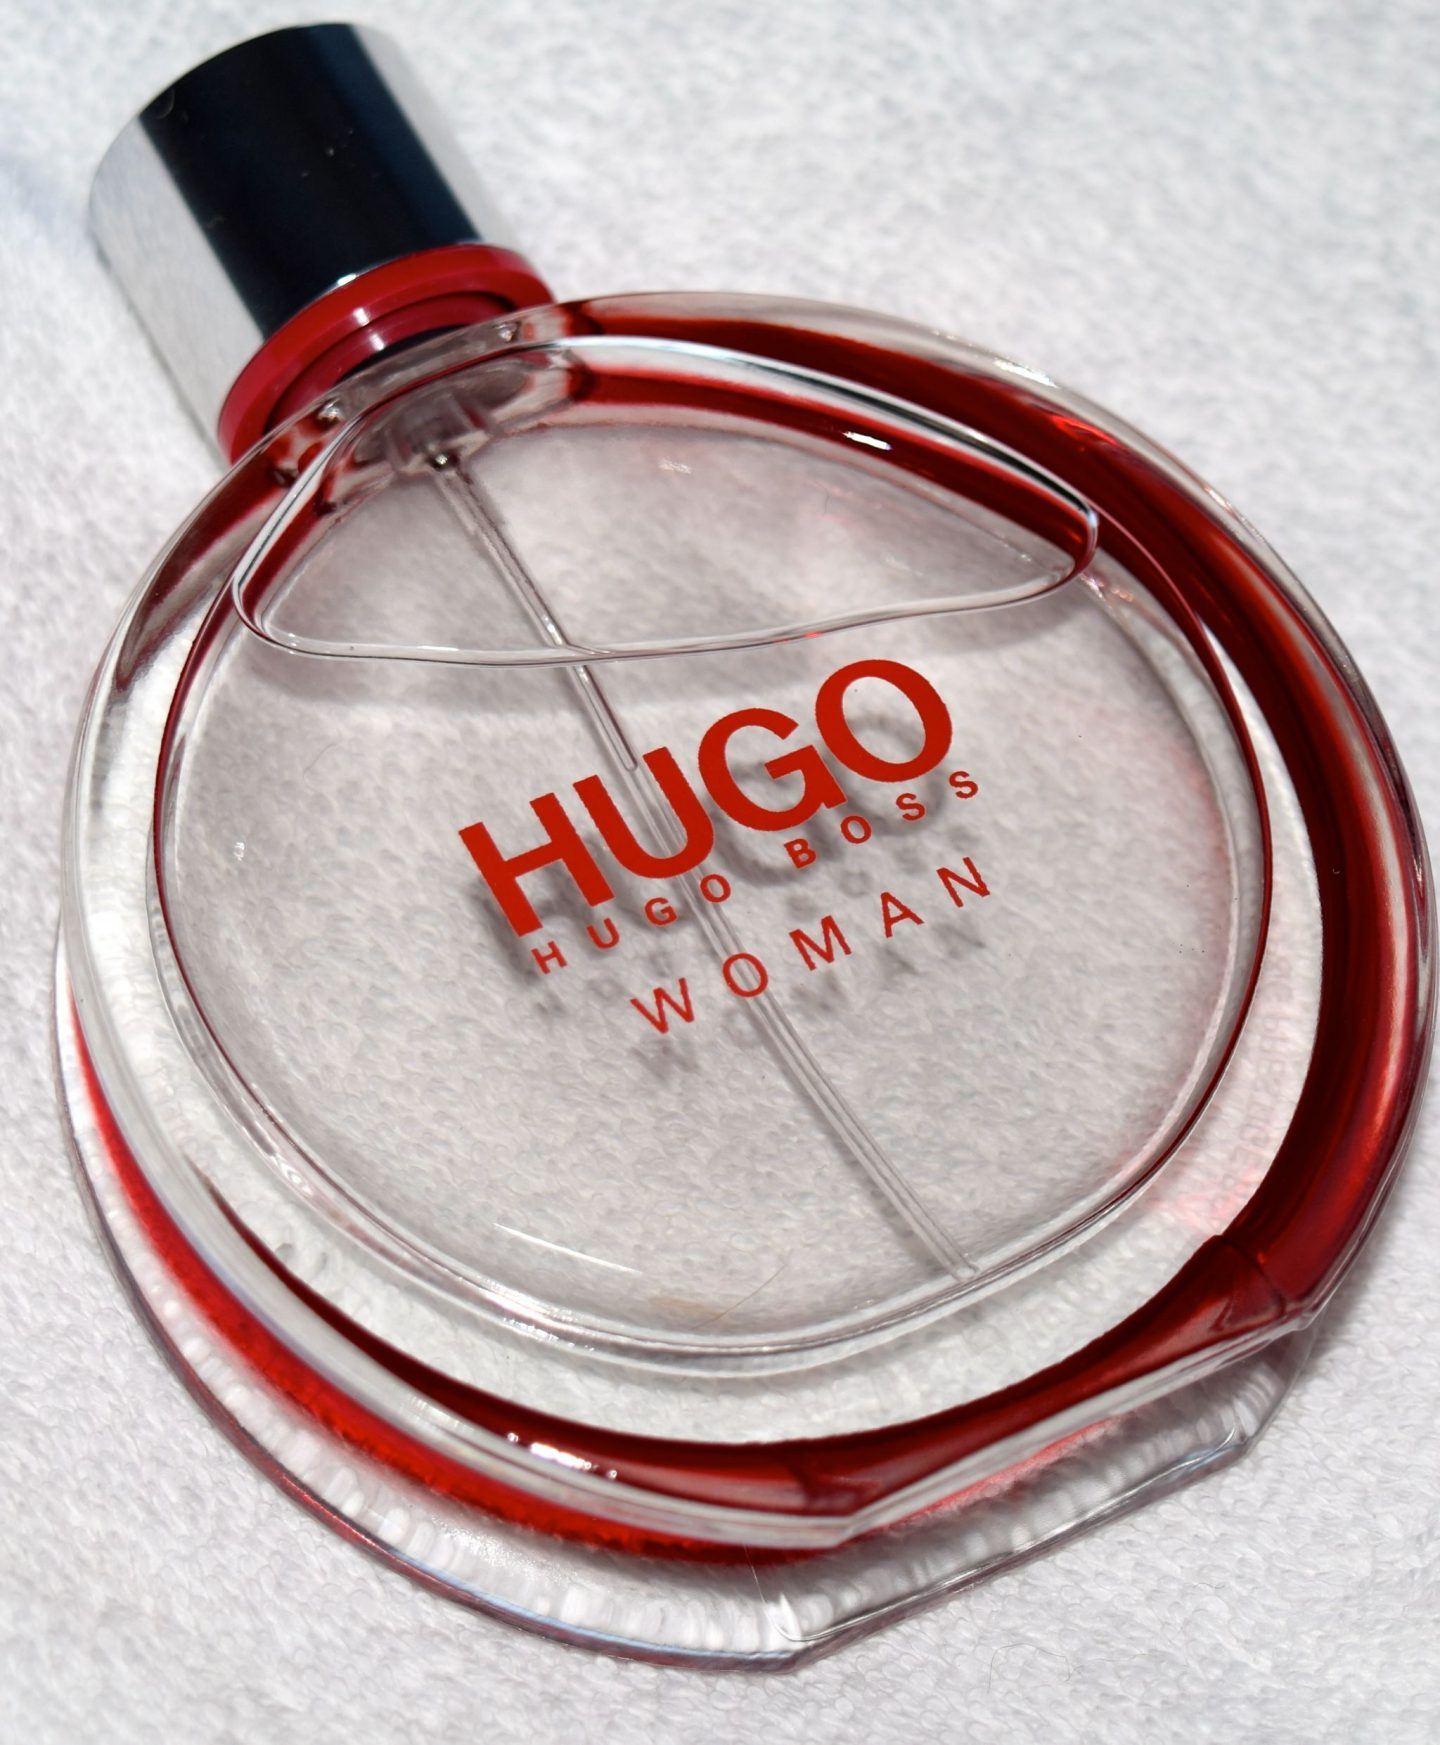 Hugo Boss Hugo Woman 2